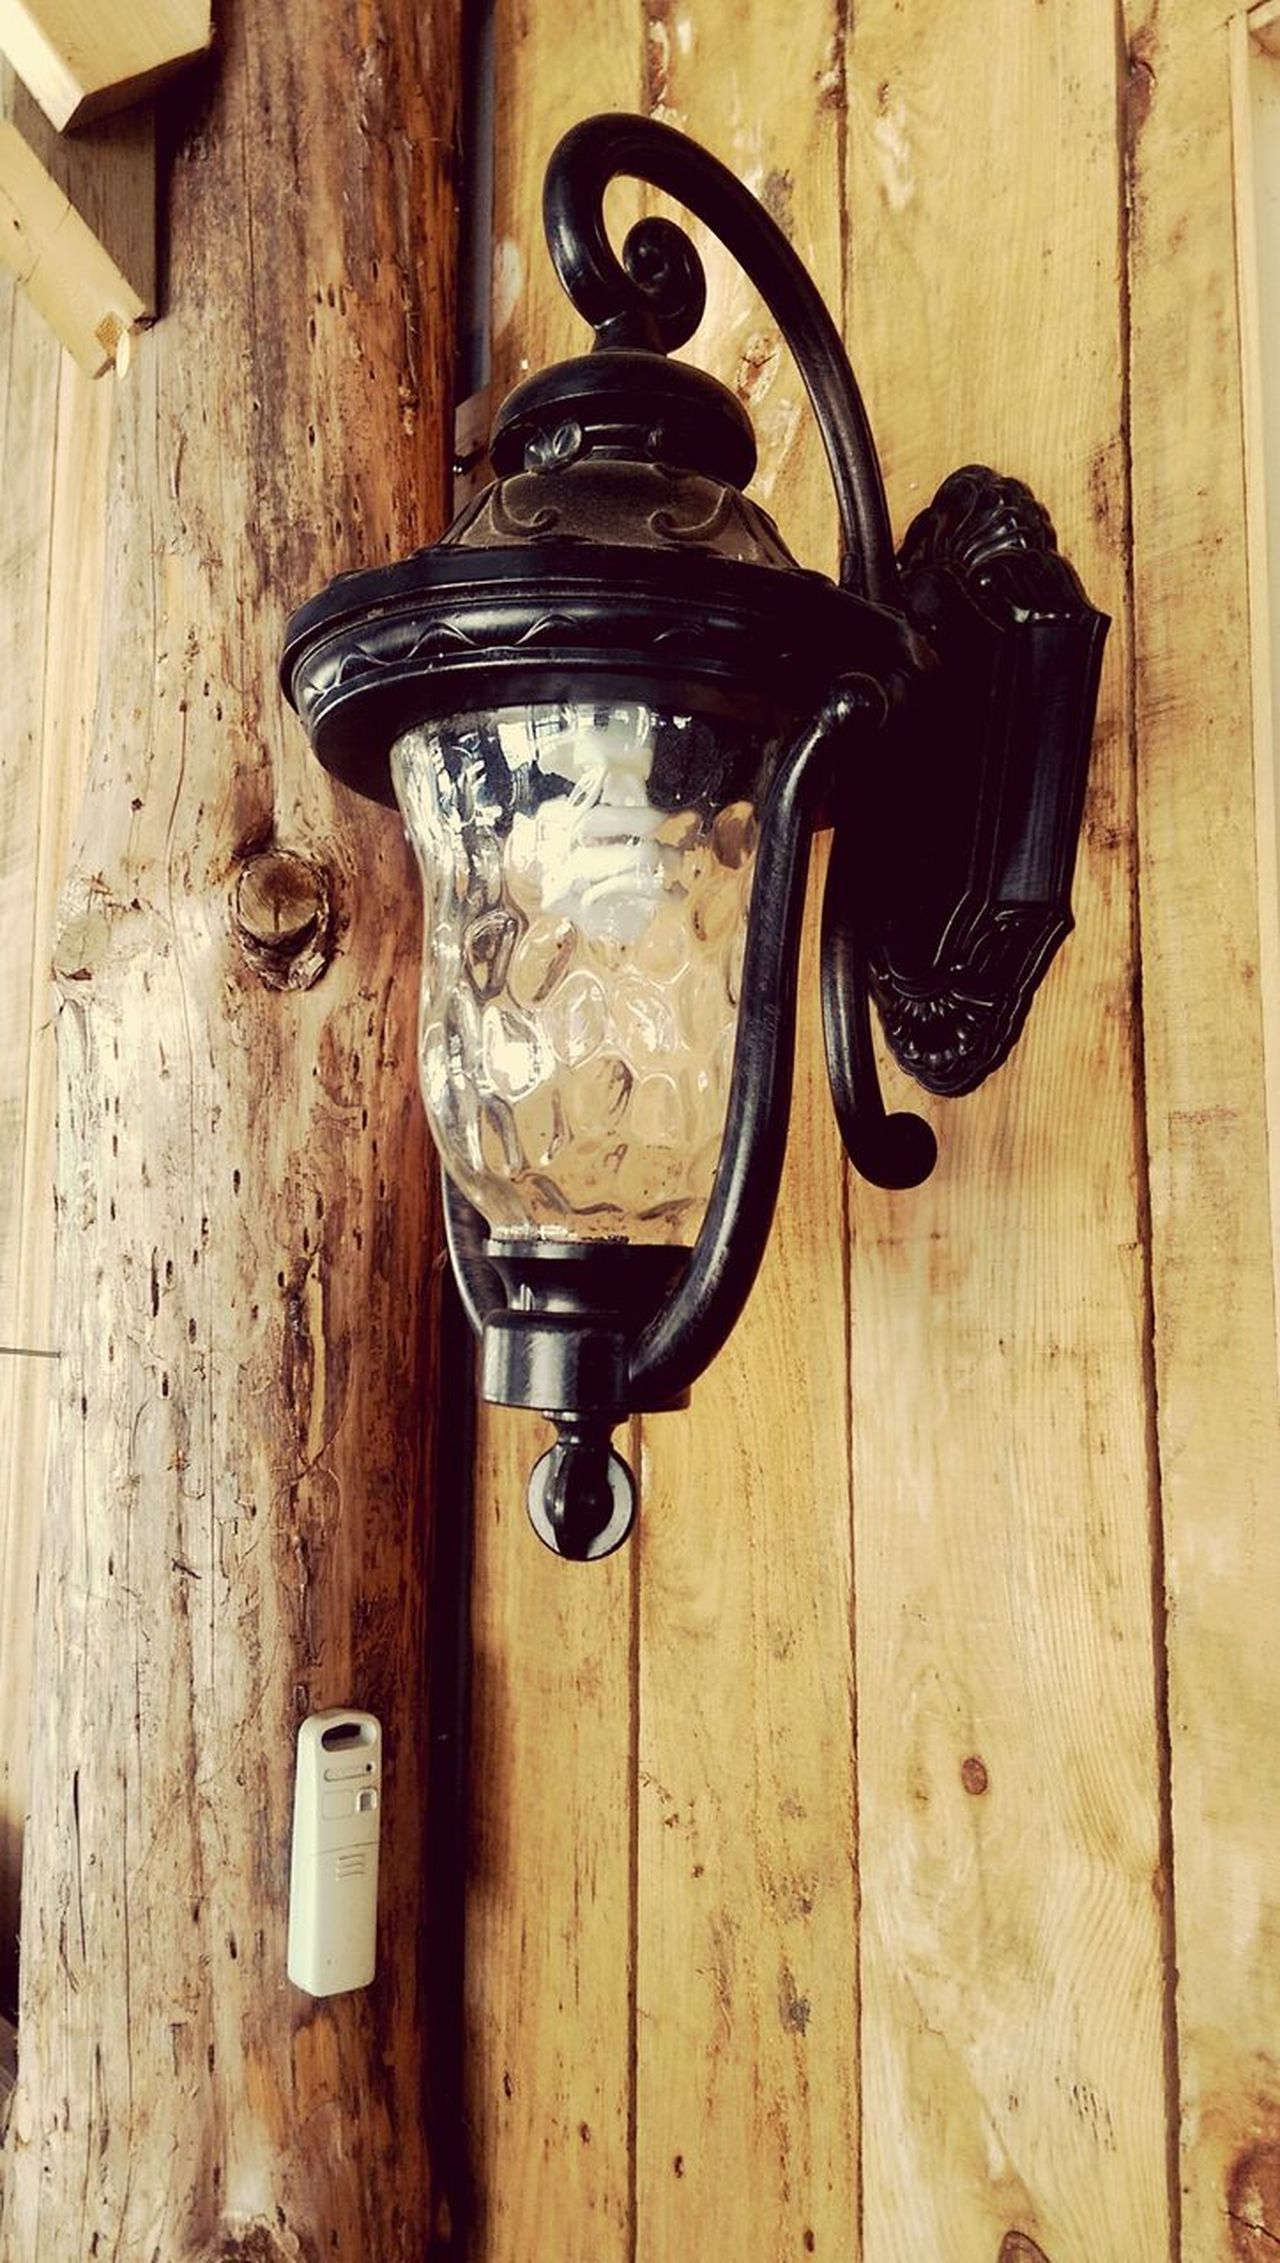 Vintage Style Lantern Wooden Post Wooden Texture Metal Country Life No People Old-fashioned Indoors  Close-up Day